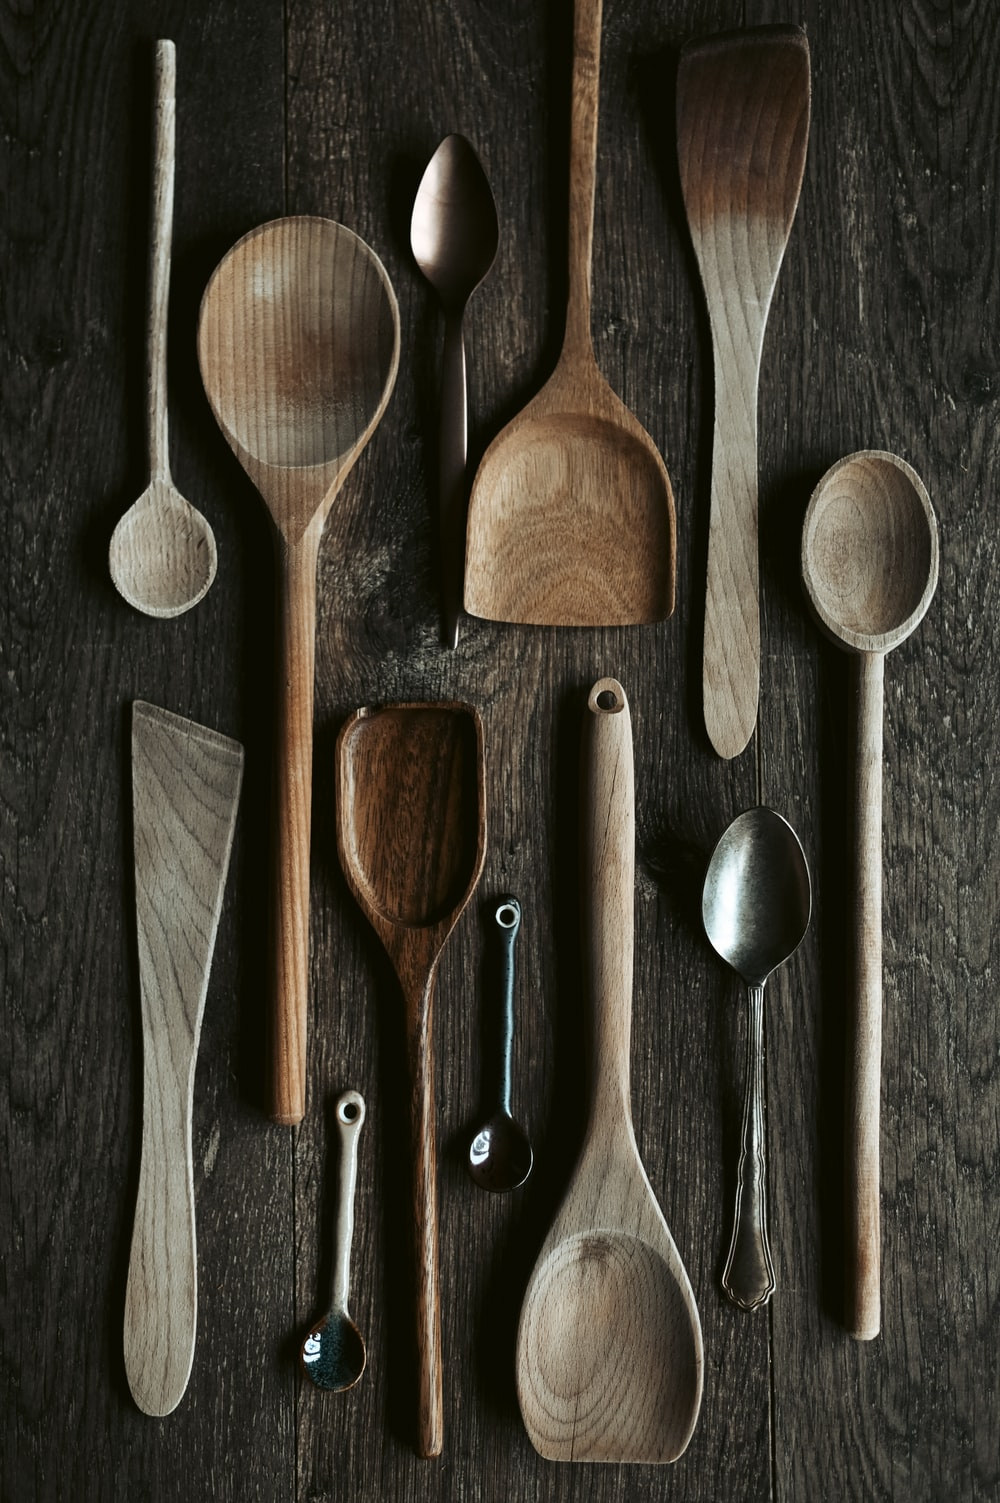 stainless steel spoon and fork